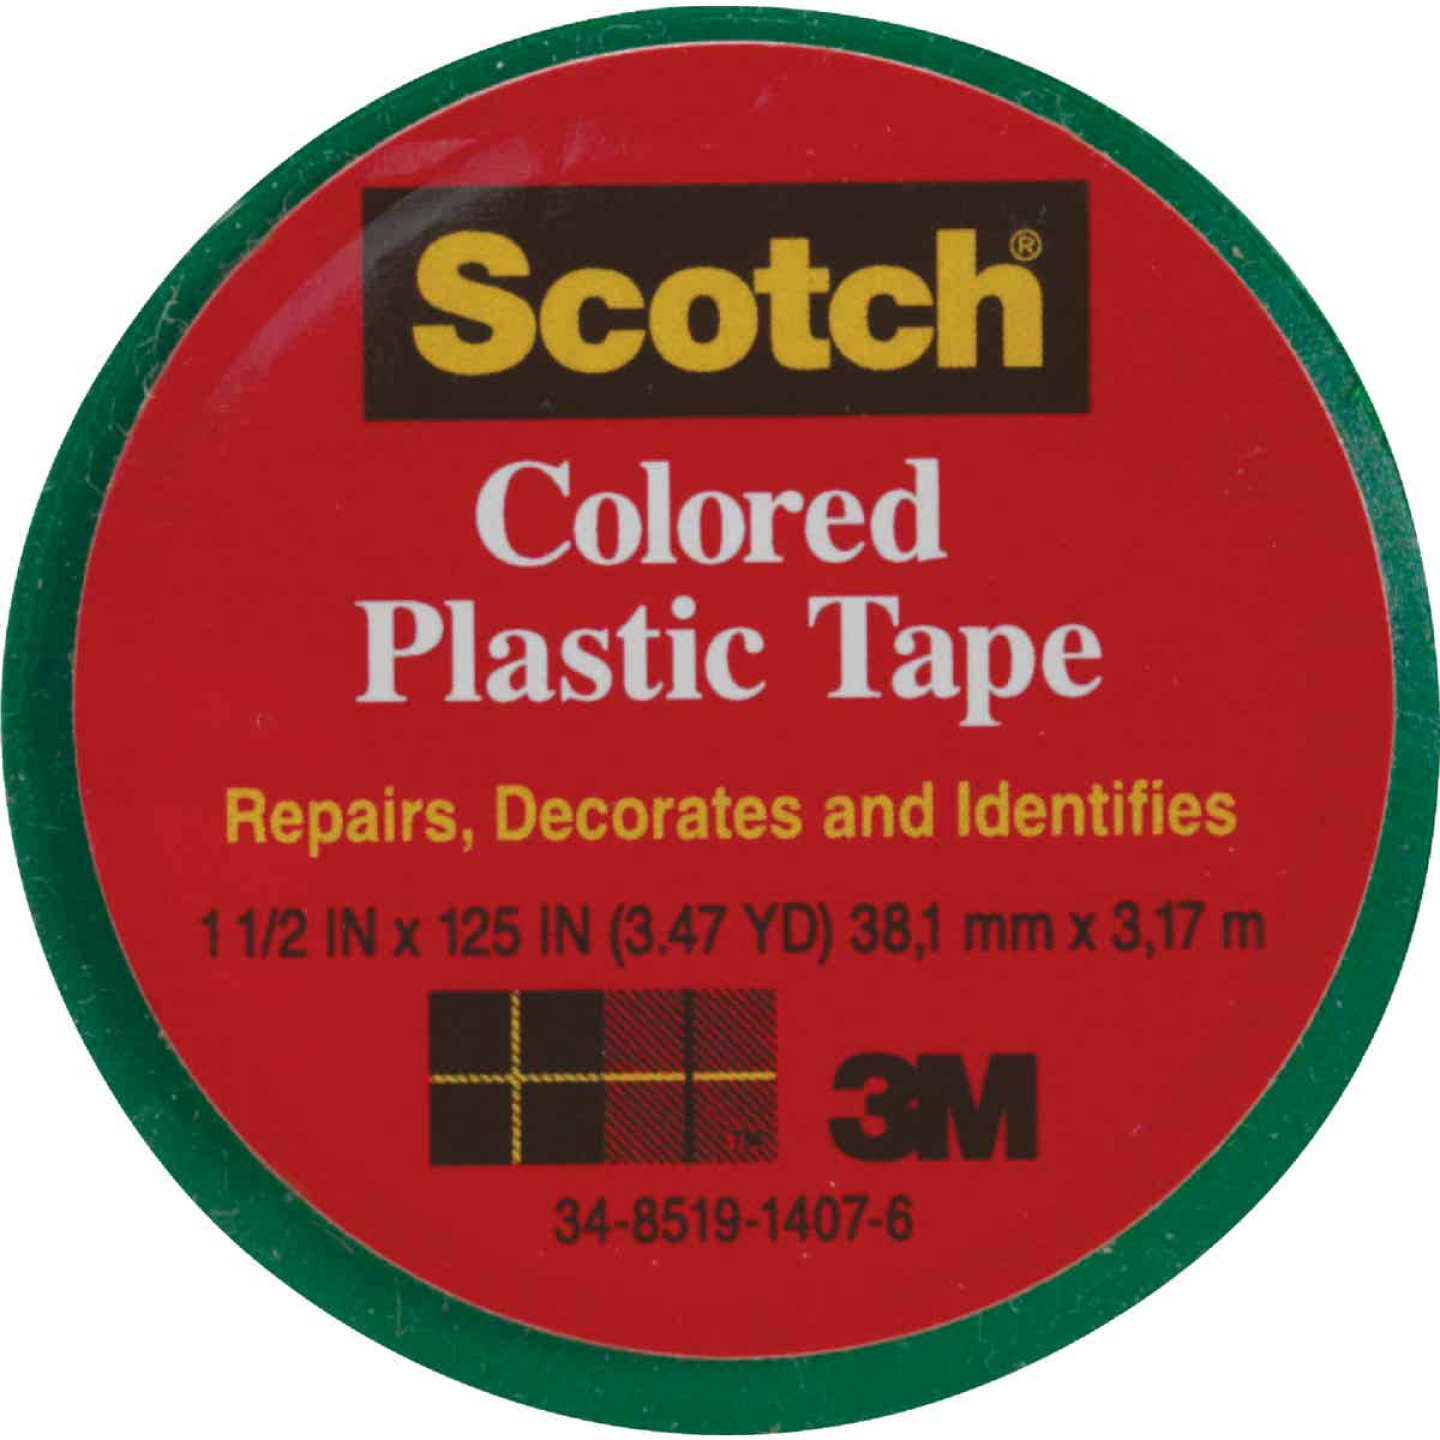 Scotch 1-1/2 In. Green Colored Plastic Tape Image 1